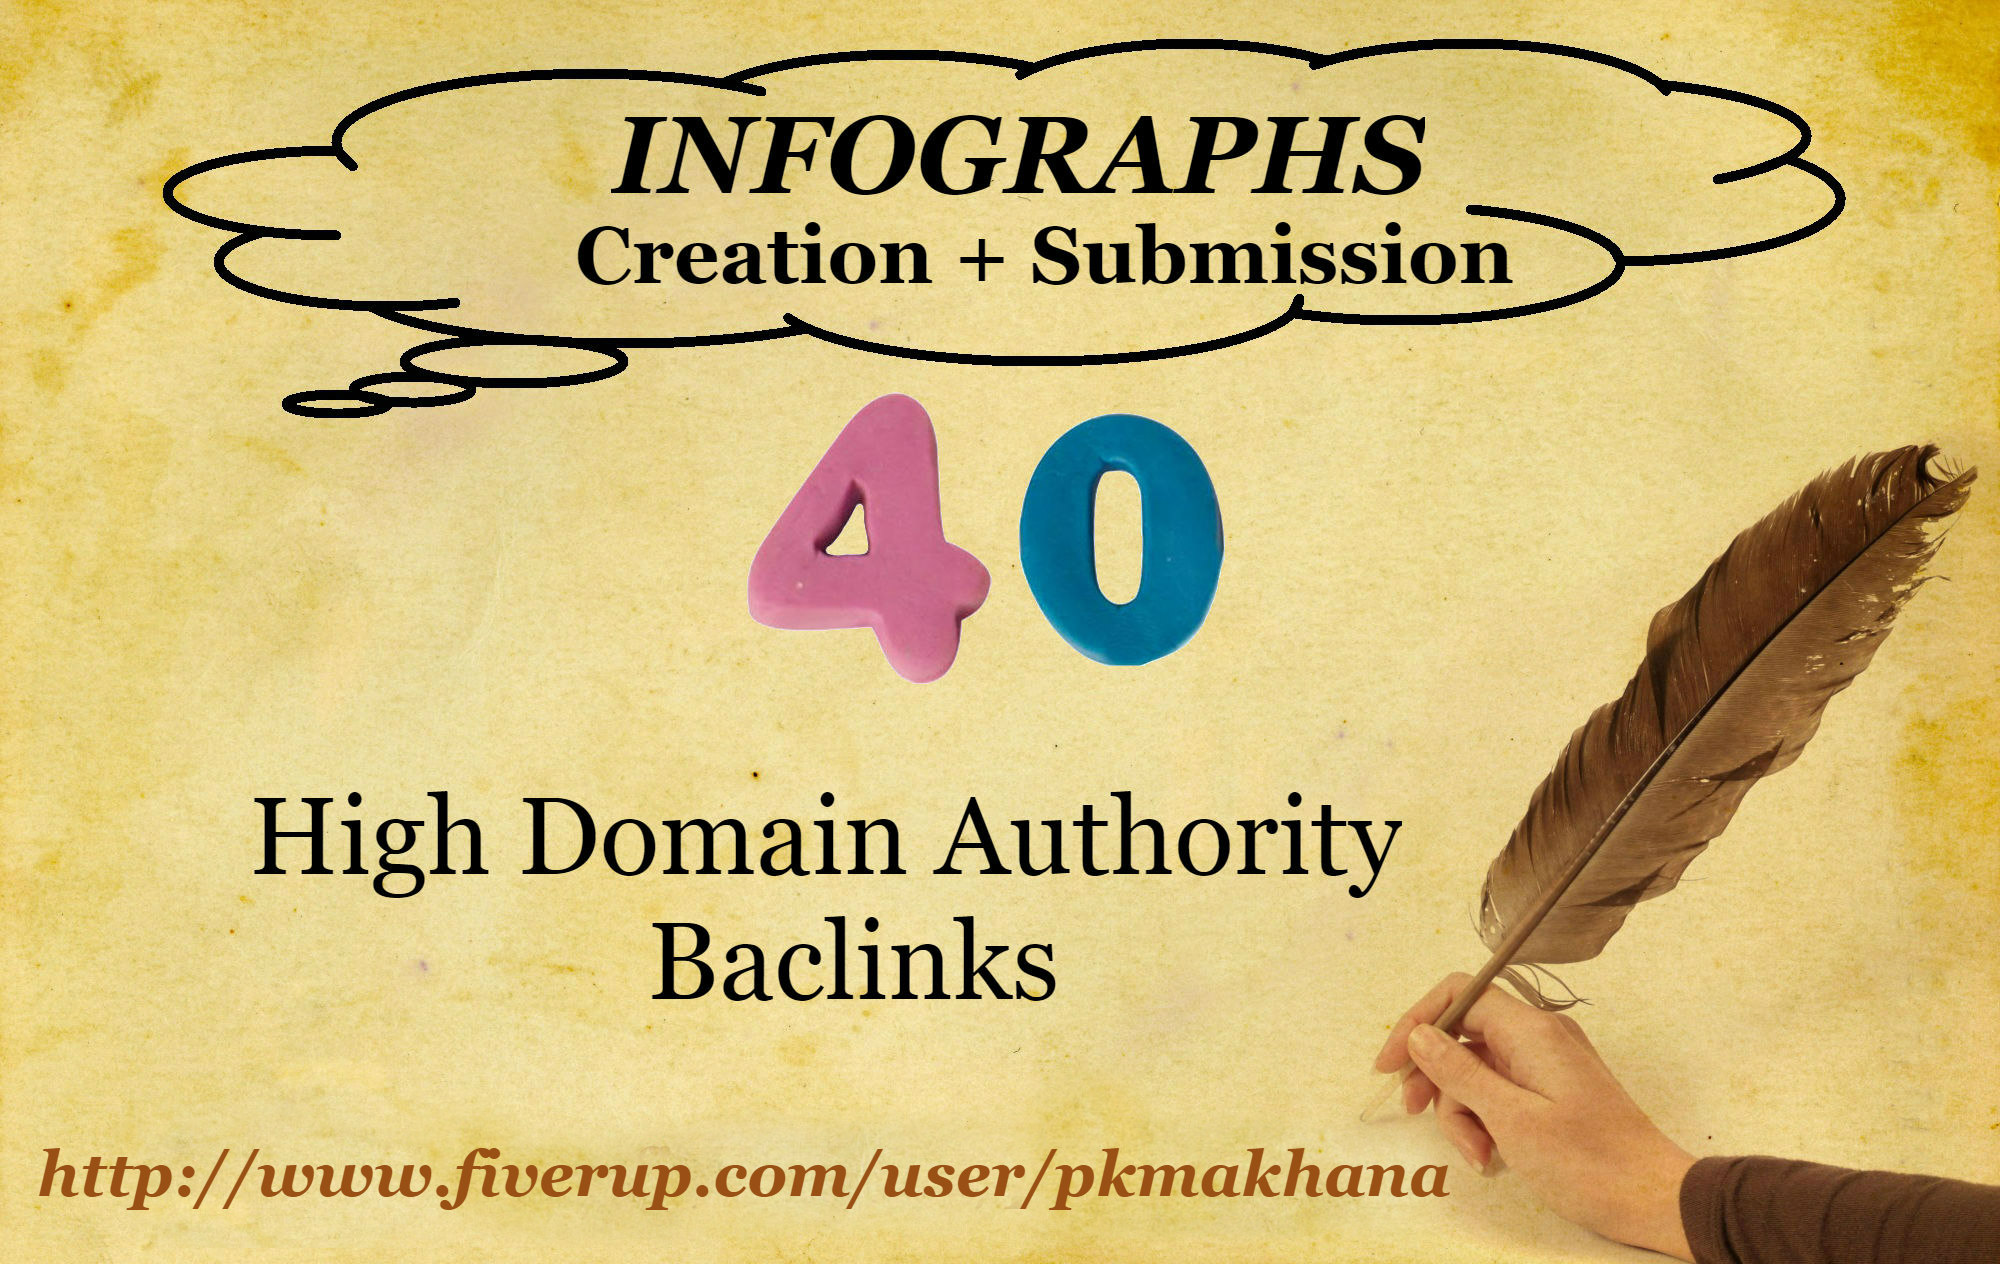 create distinct INFOGRAPHS and 40 backlinks for your site in a day